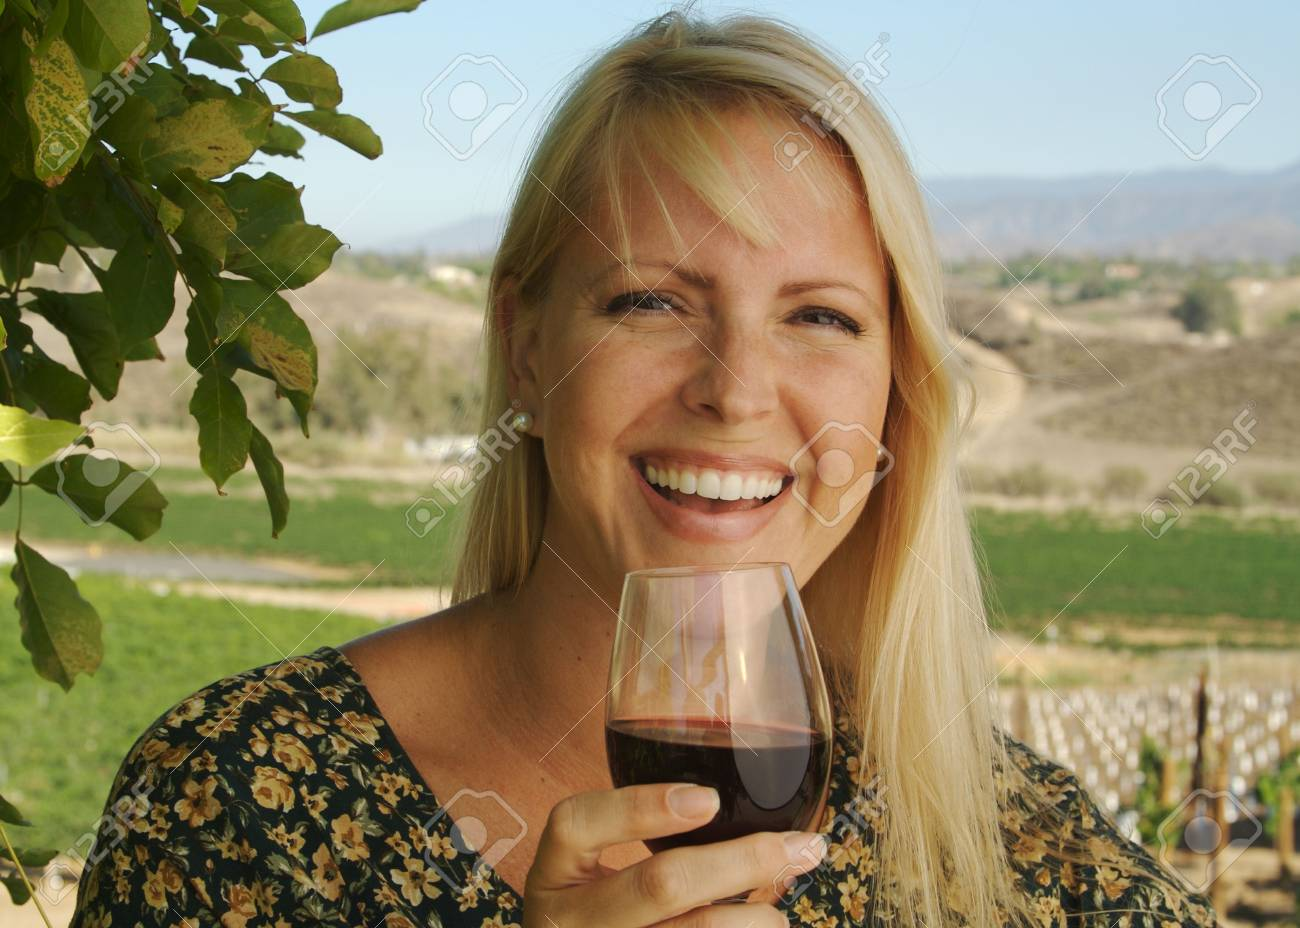 Beautiful smiling woman at a country winery tasting wine on a summer day. Stock Photo - 1311475